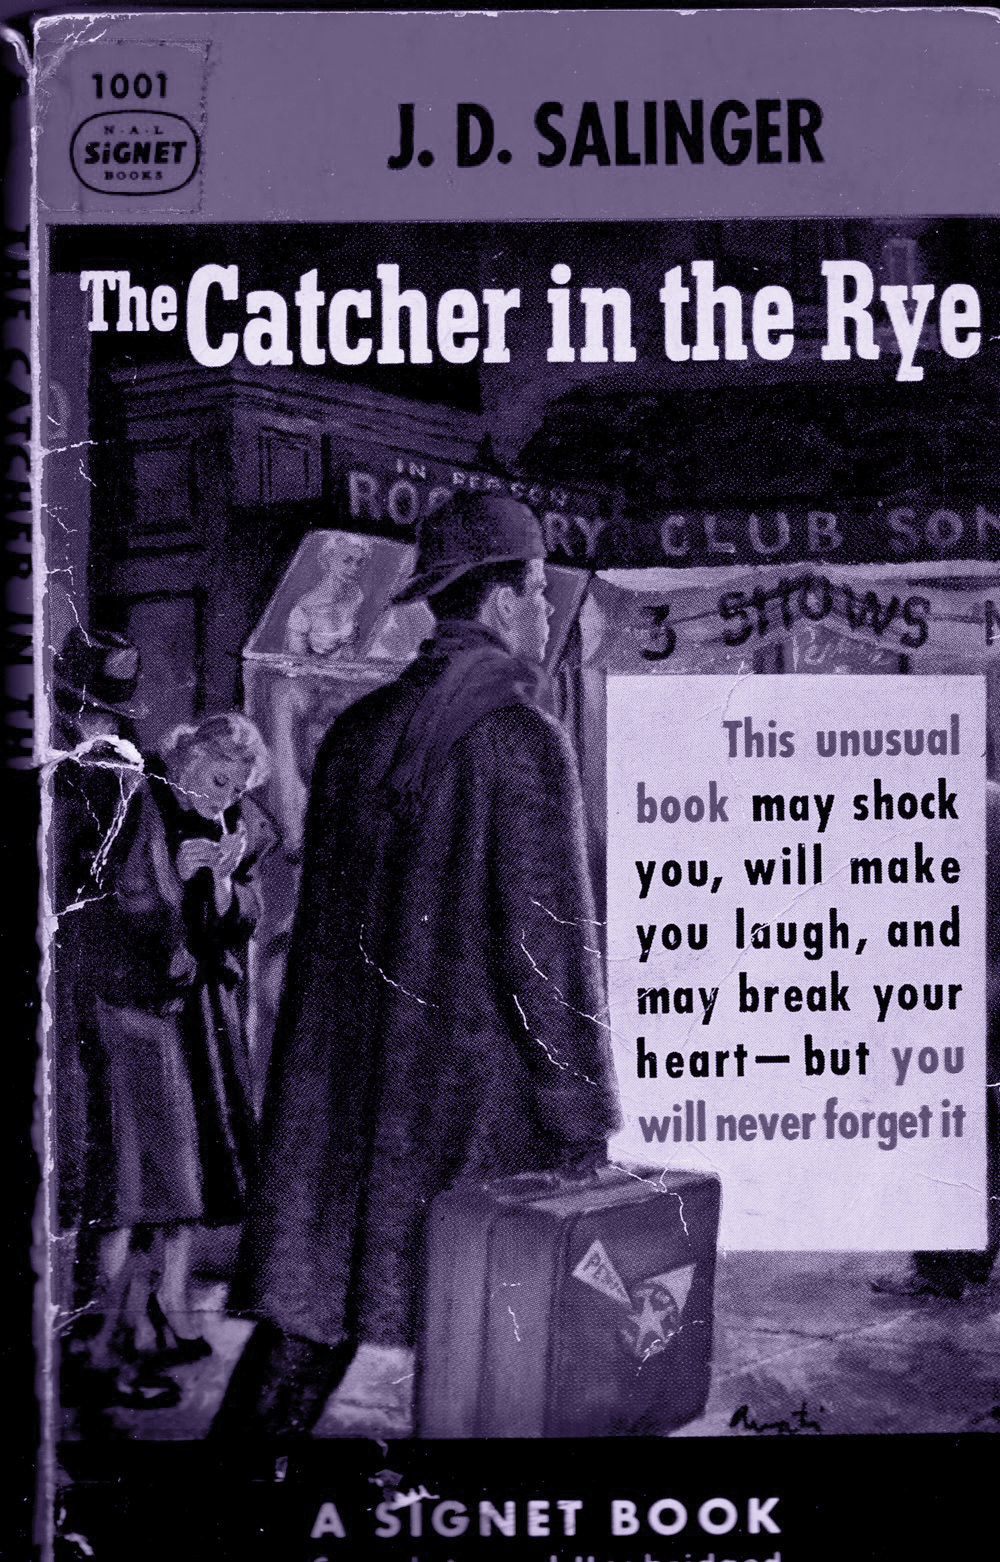 'The Catcher in the Rye' by J.D. Salinger persuasive essay...need help with a thesis statement...?